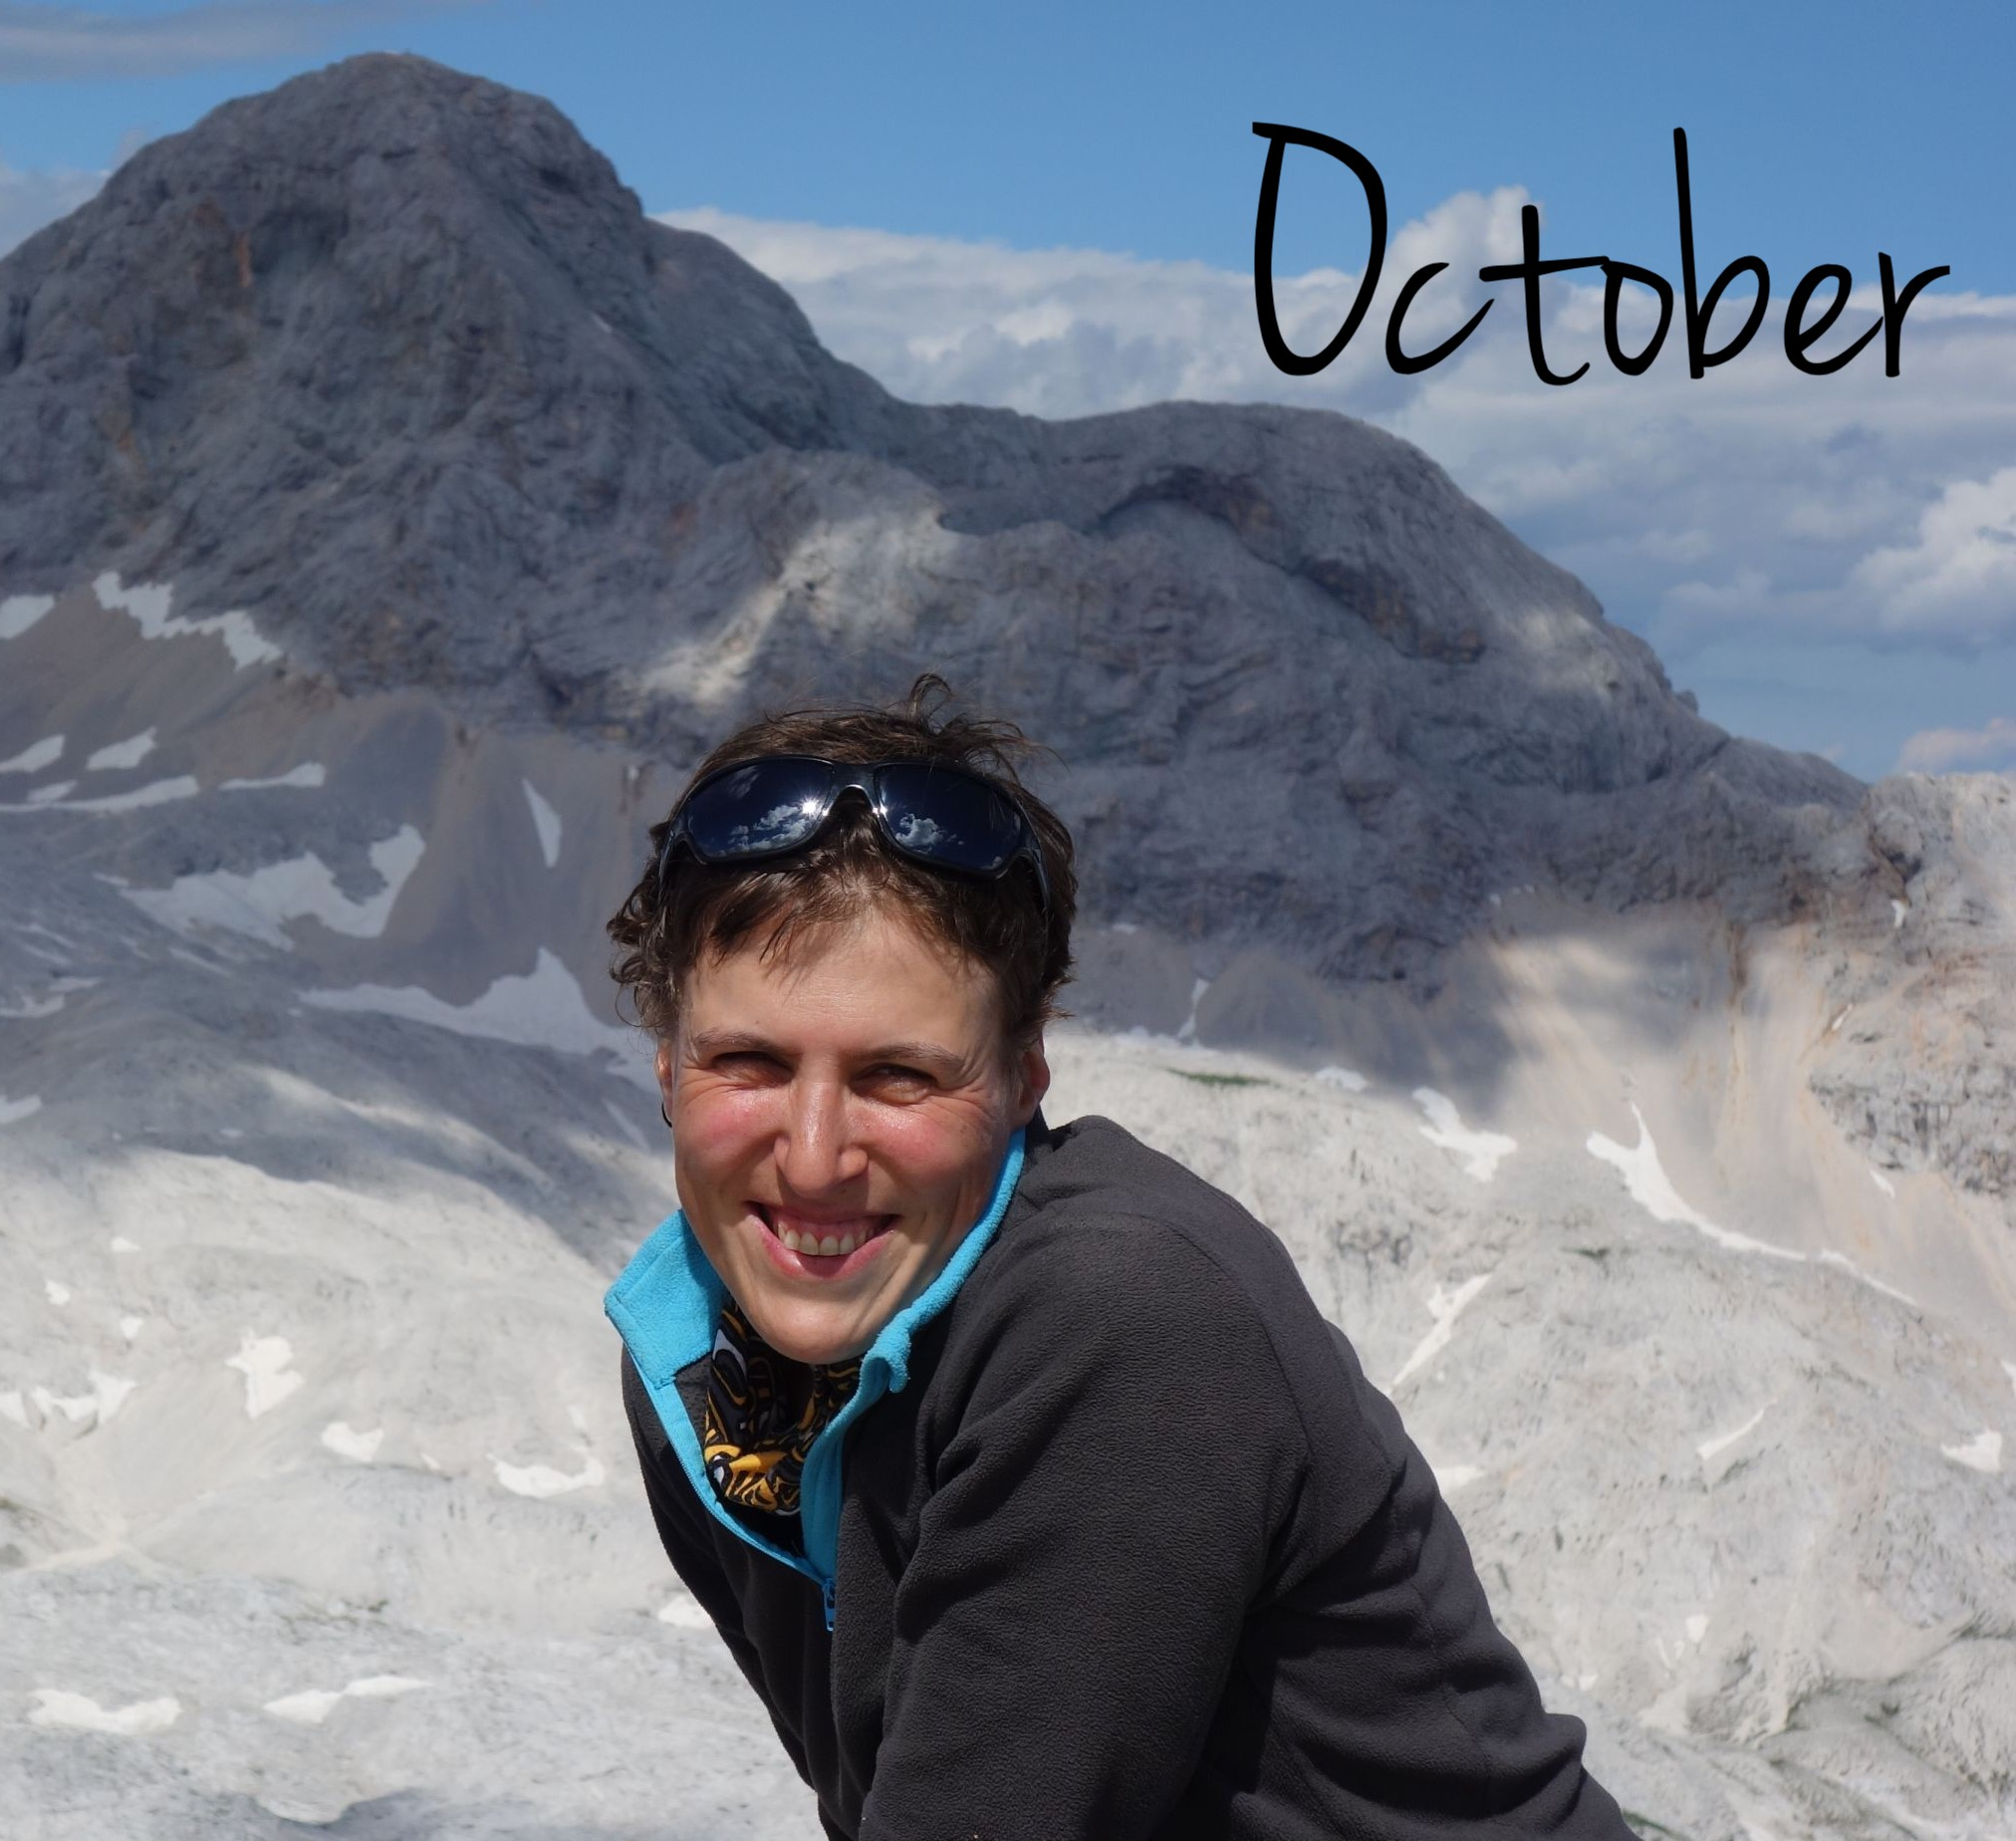 "In October, I jumped of joy, when the great Debbie Sanders expressed interest to guide for Puffins. Debbie is Belgium's unrivalled authority with regards to mountain walking. She has covered almost all of Europe's mountains and is starting to conquer other continents as well. She is the chairwoman of the biggest non-profit hiking community of the Benelux ""Hiking Advisor"" with 5000 members and wrote a book on mountain hiking. I'm very proud to announce today, that we will guide together on  Scotland's wild western islands of the Inner Hebrides from 22-29 September,  with 3 nights in B&B's and 4 nights aboard a sailing yacht. Limited edition for 10 Puffins only !"